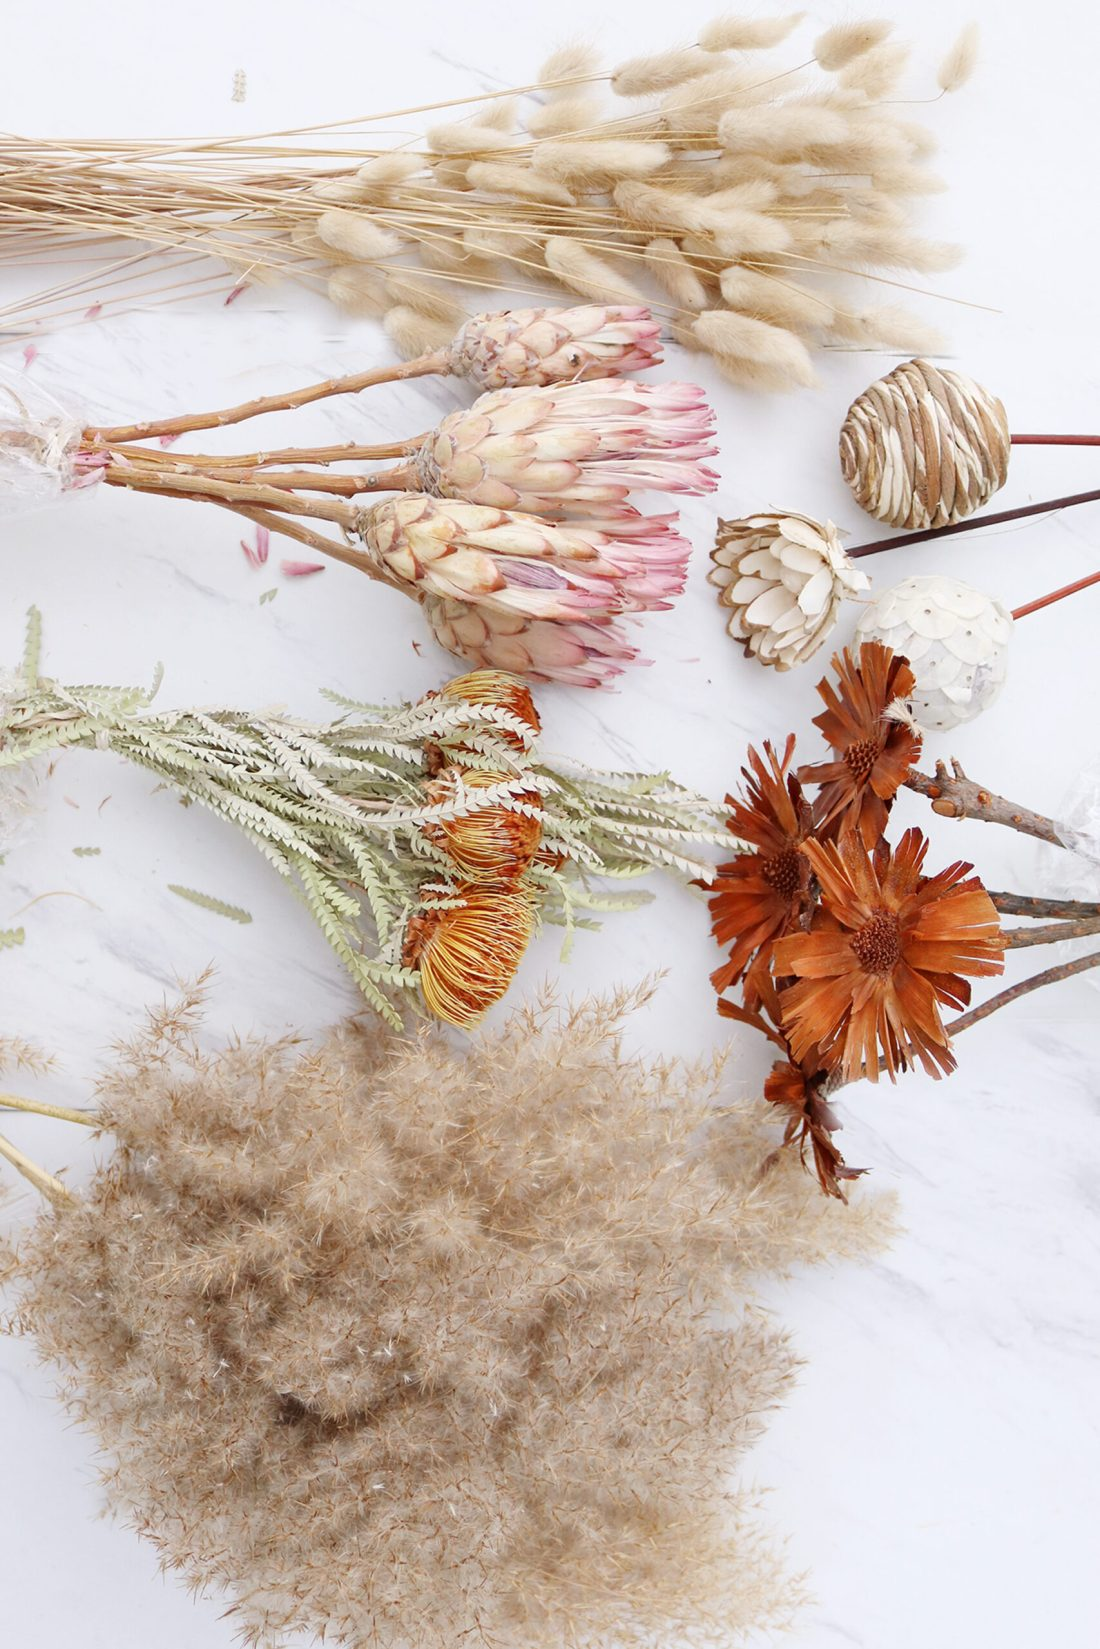 Where to find flowers for dried flower arrangements and the best flowers to choose. Pampas grass, bunny tail and protea flower arrangements || Darling Darleen Top Lifestyle Connecticut Blogger